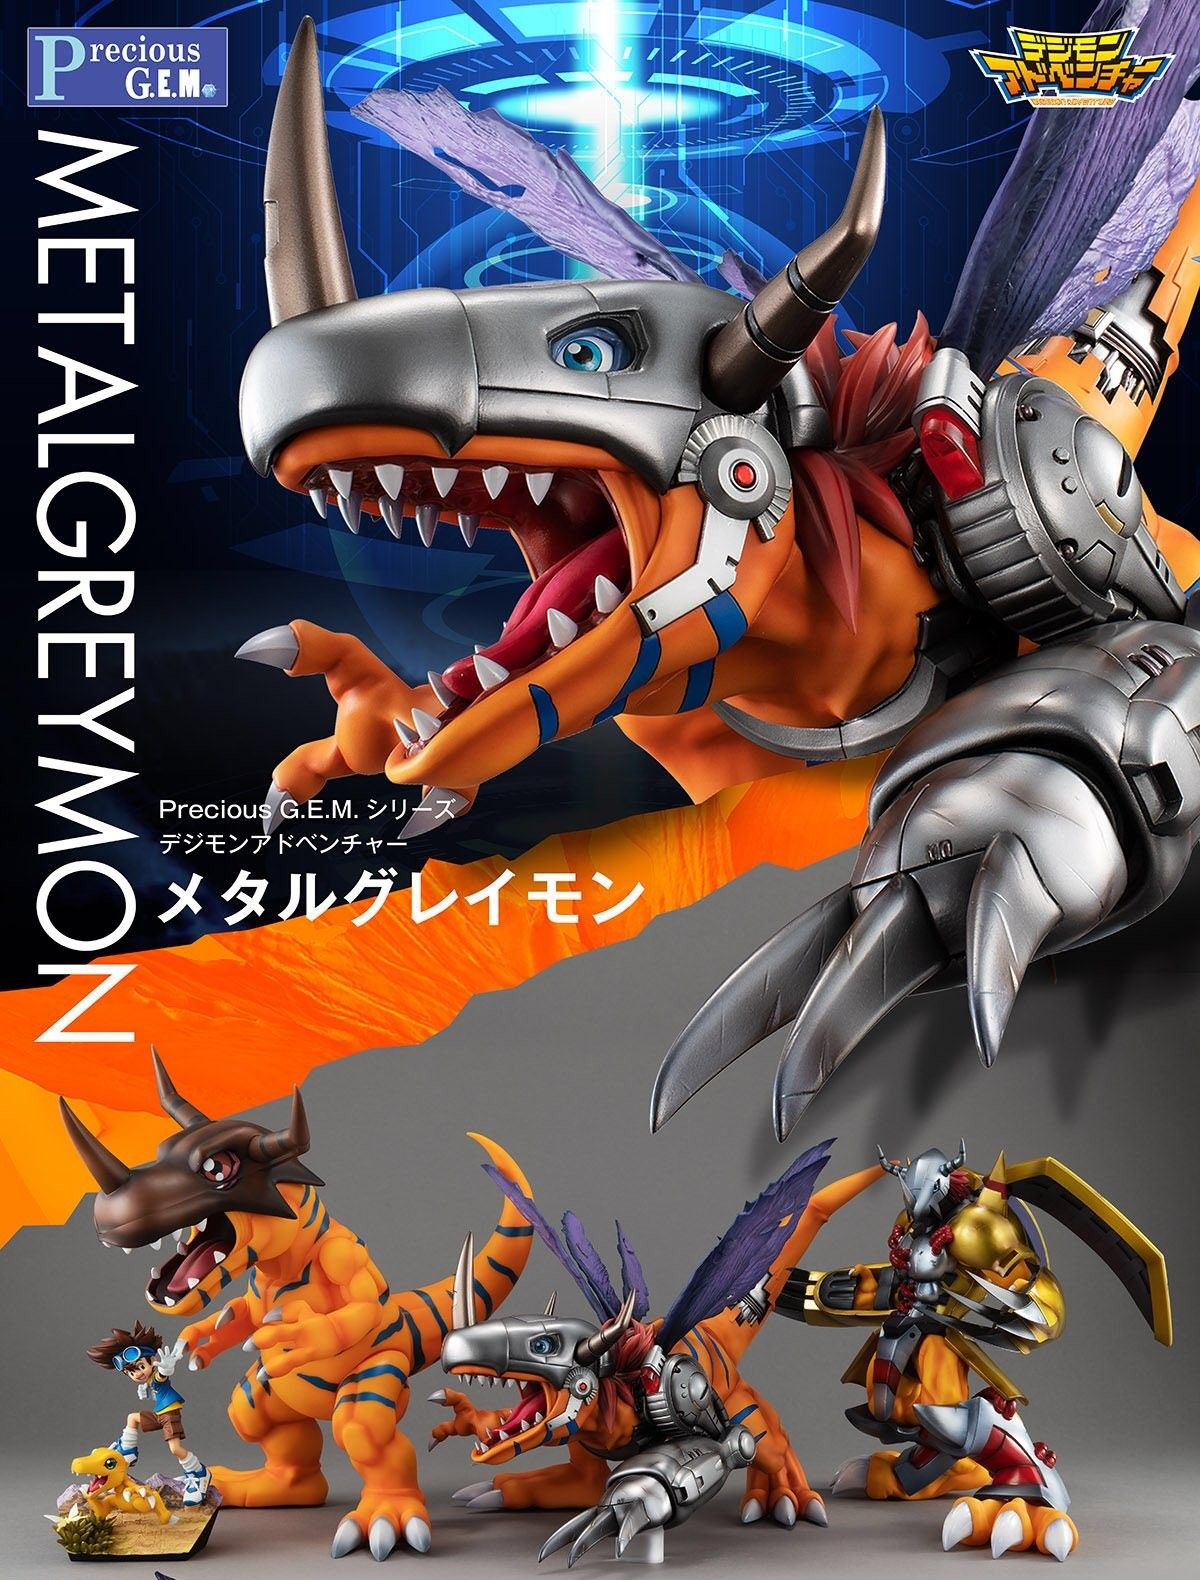 Pin by anime4ever on Digimon in 2020 Digimon, Digimon